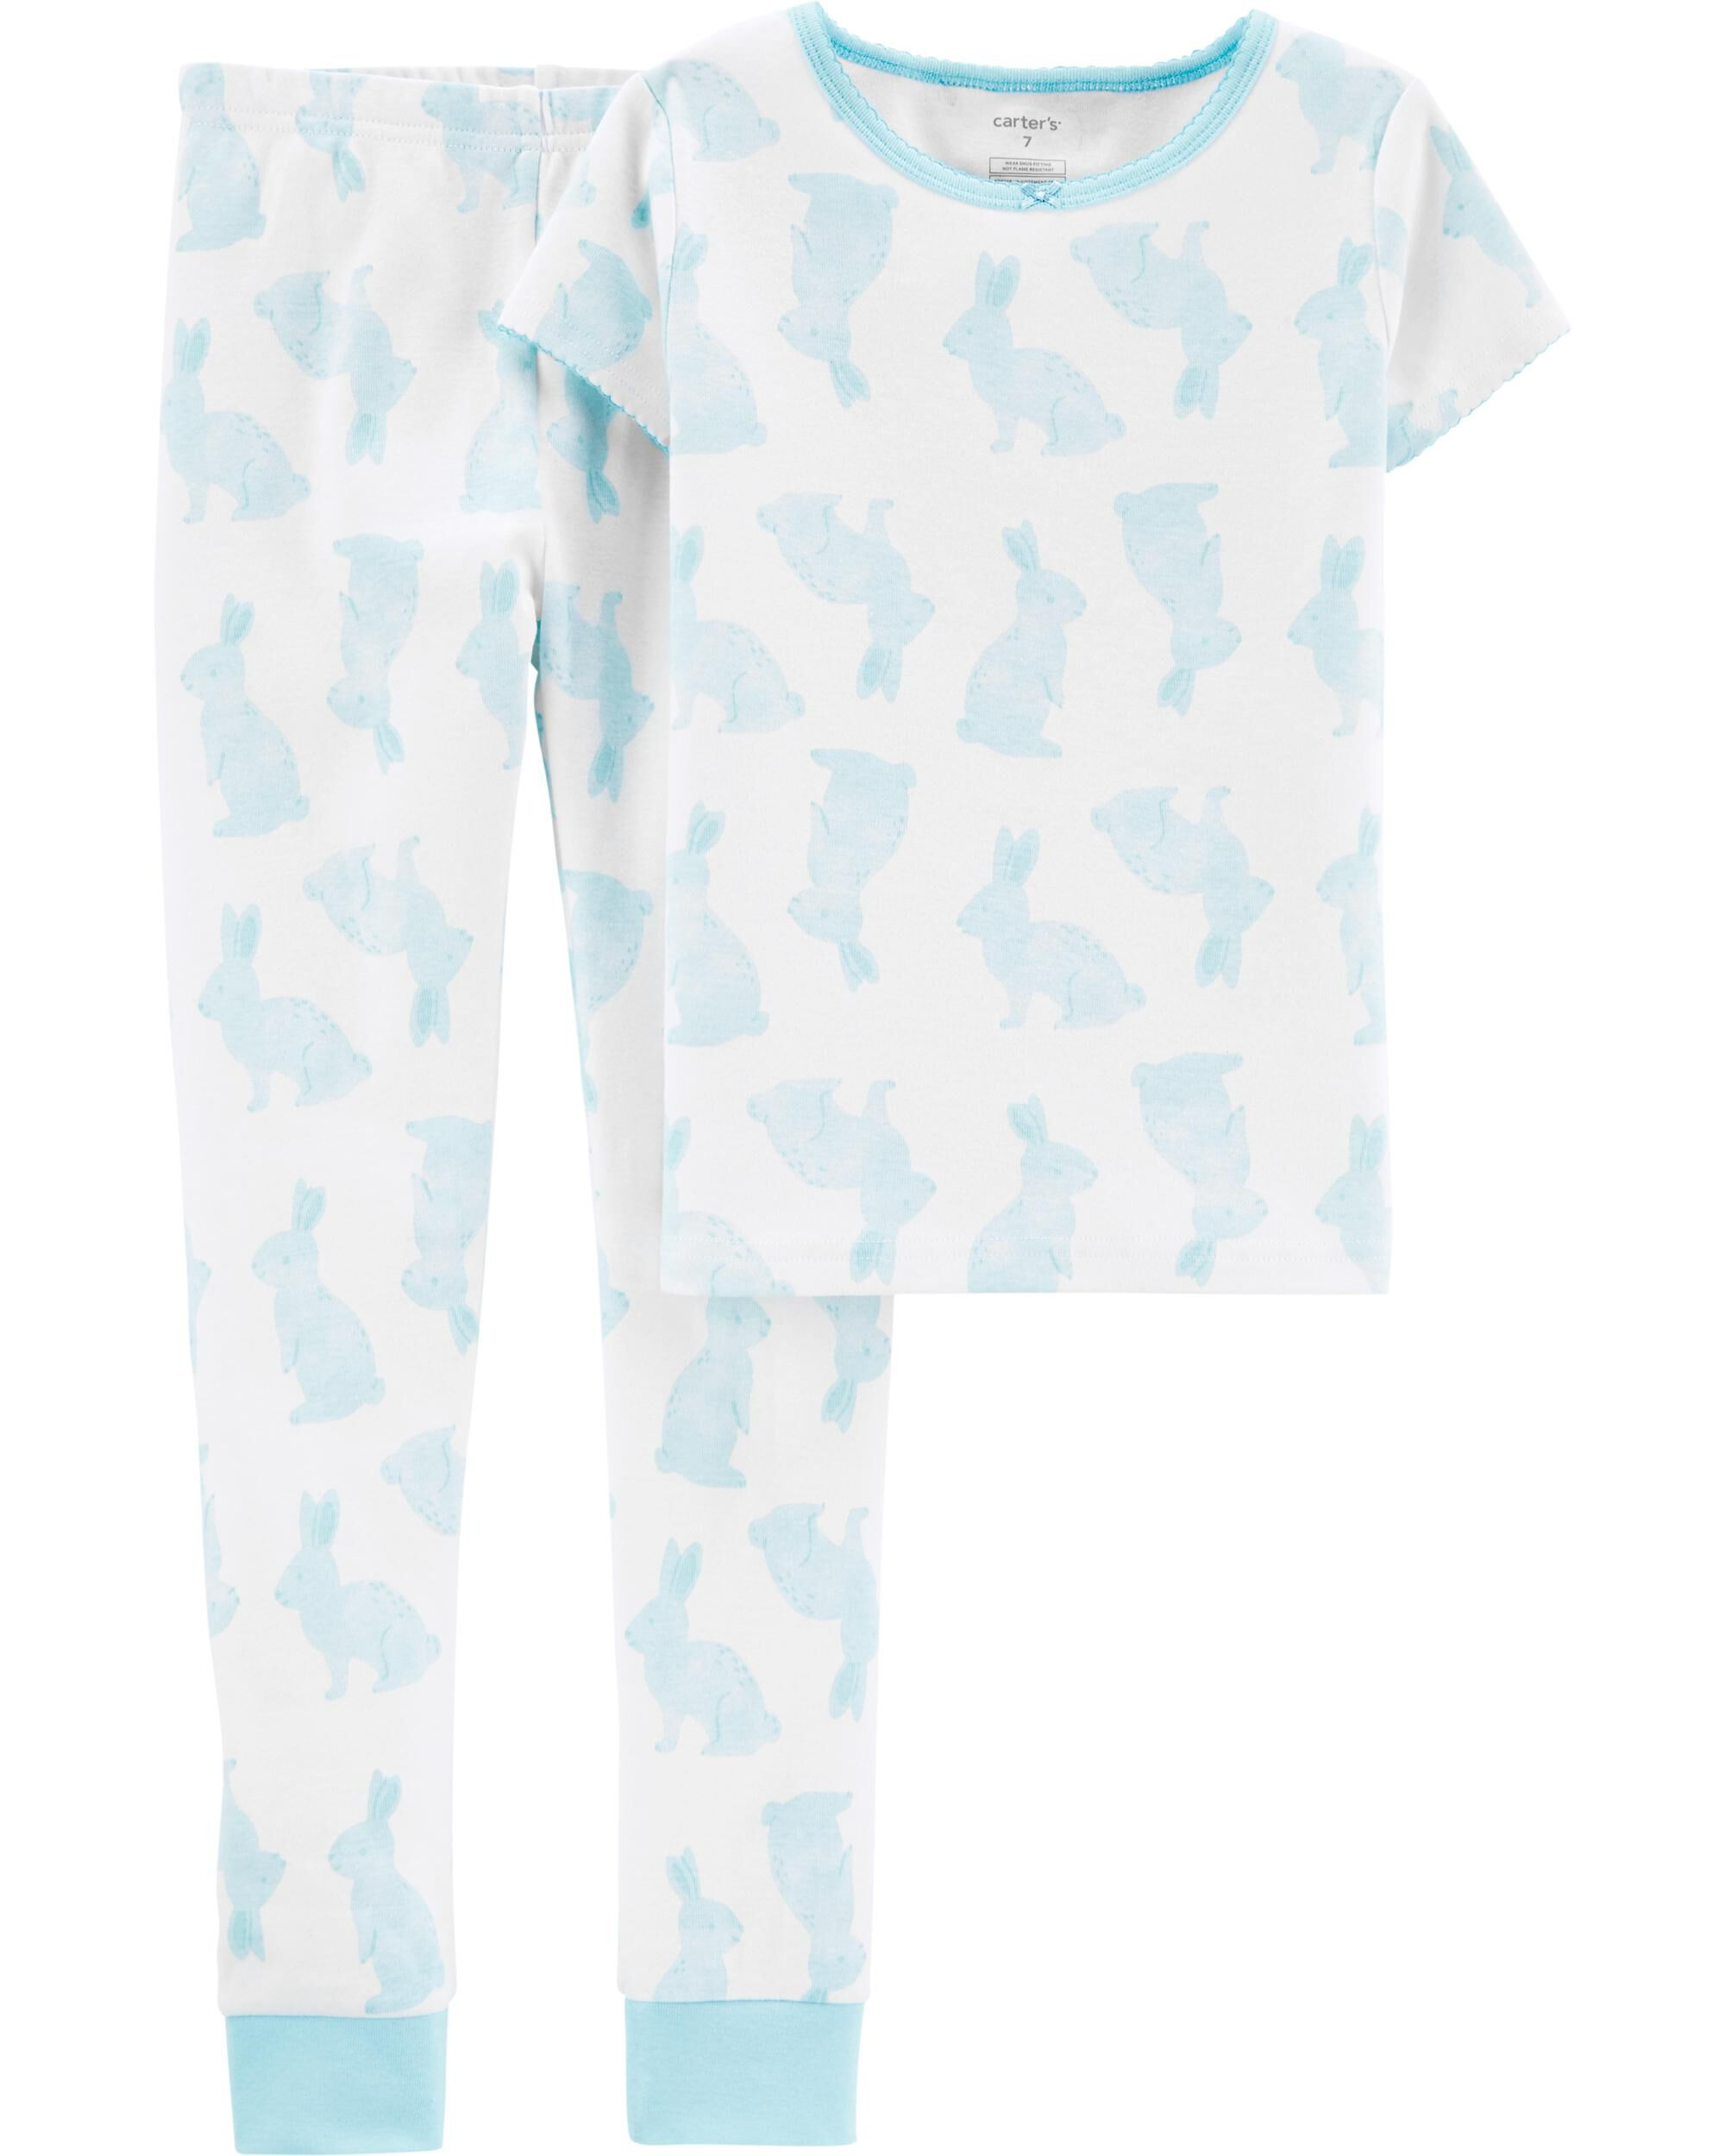 *DOORBUSTER* 2-Piece Bunny Snug Fit Cotton PJs